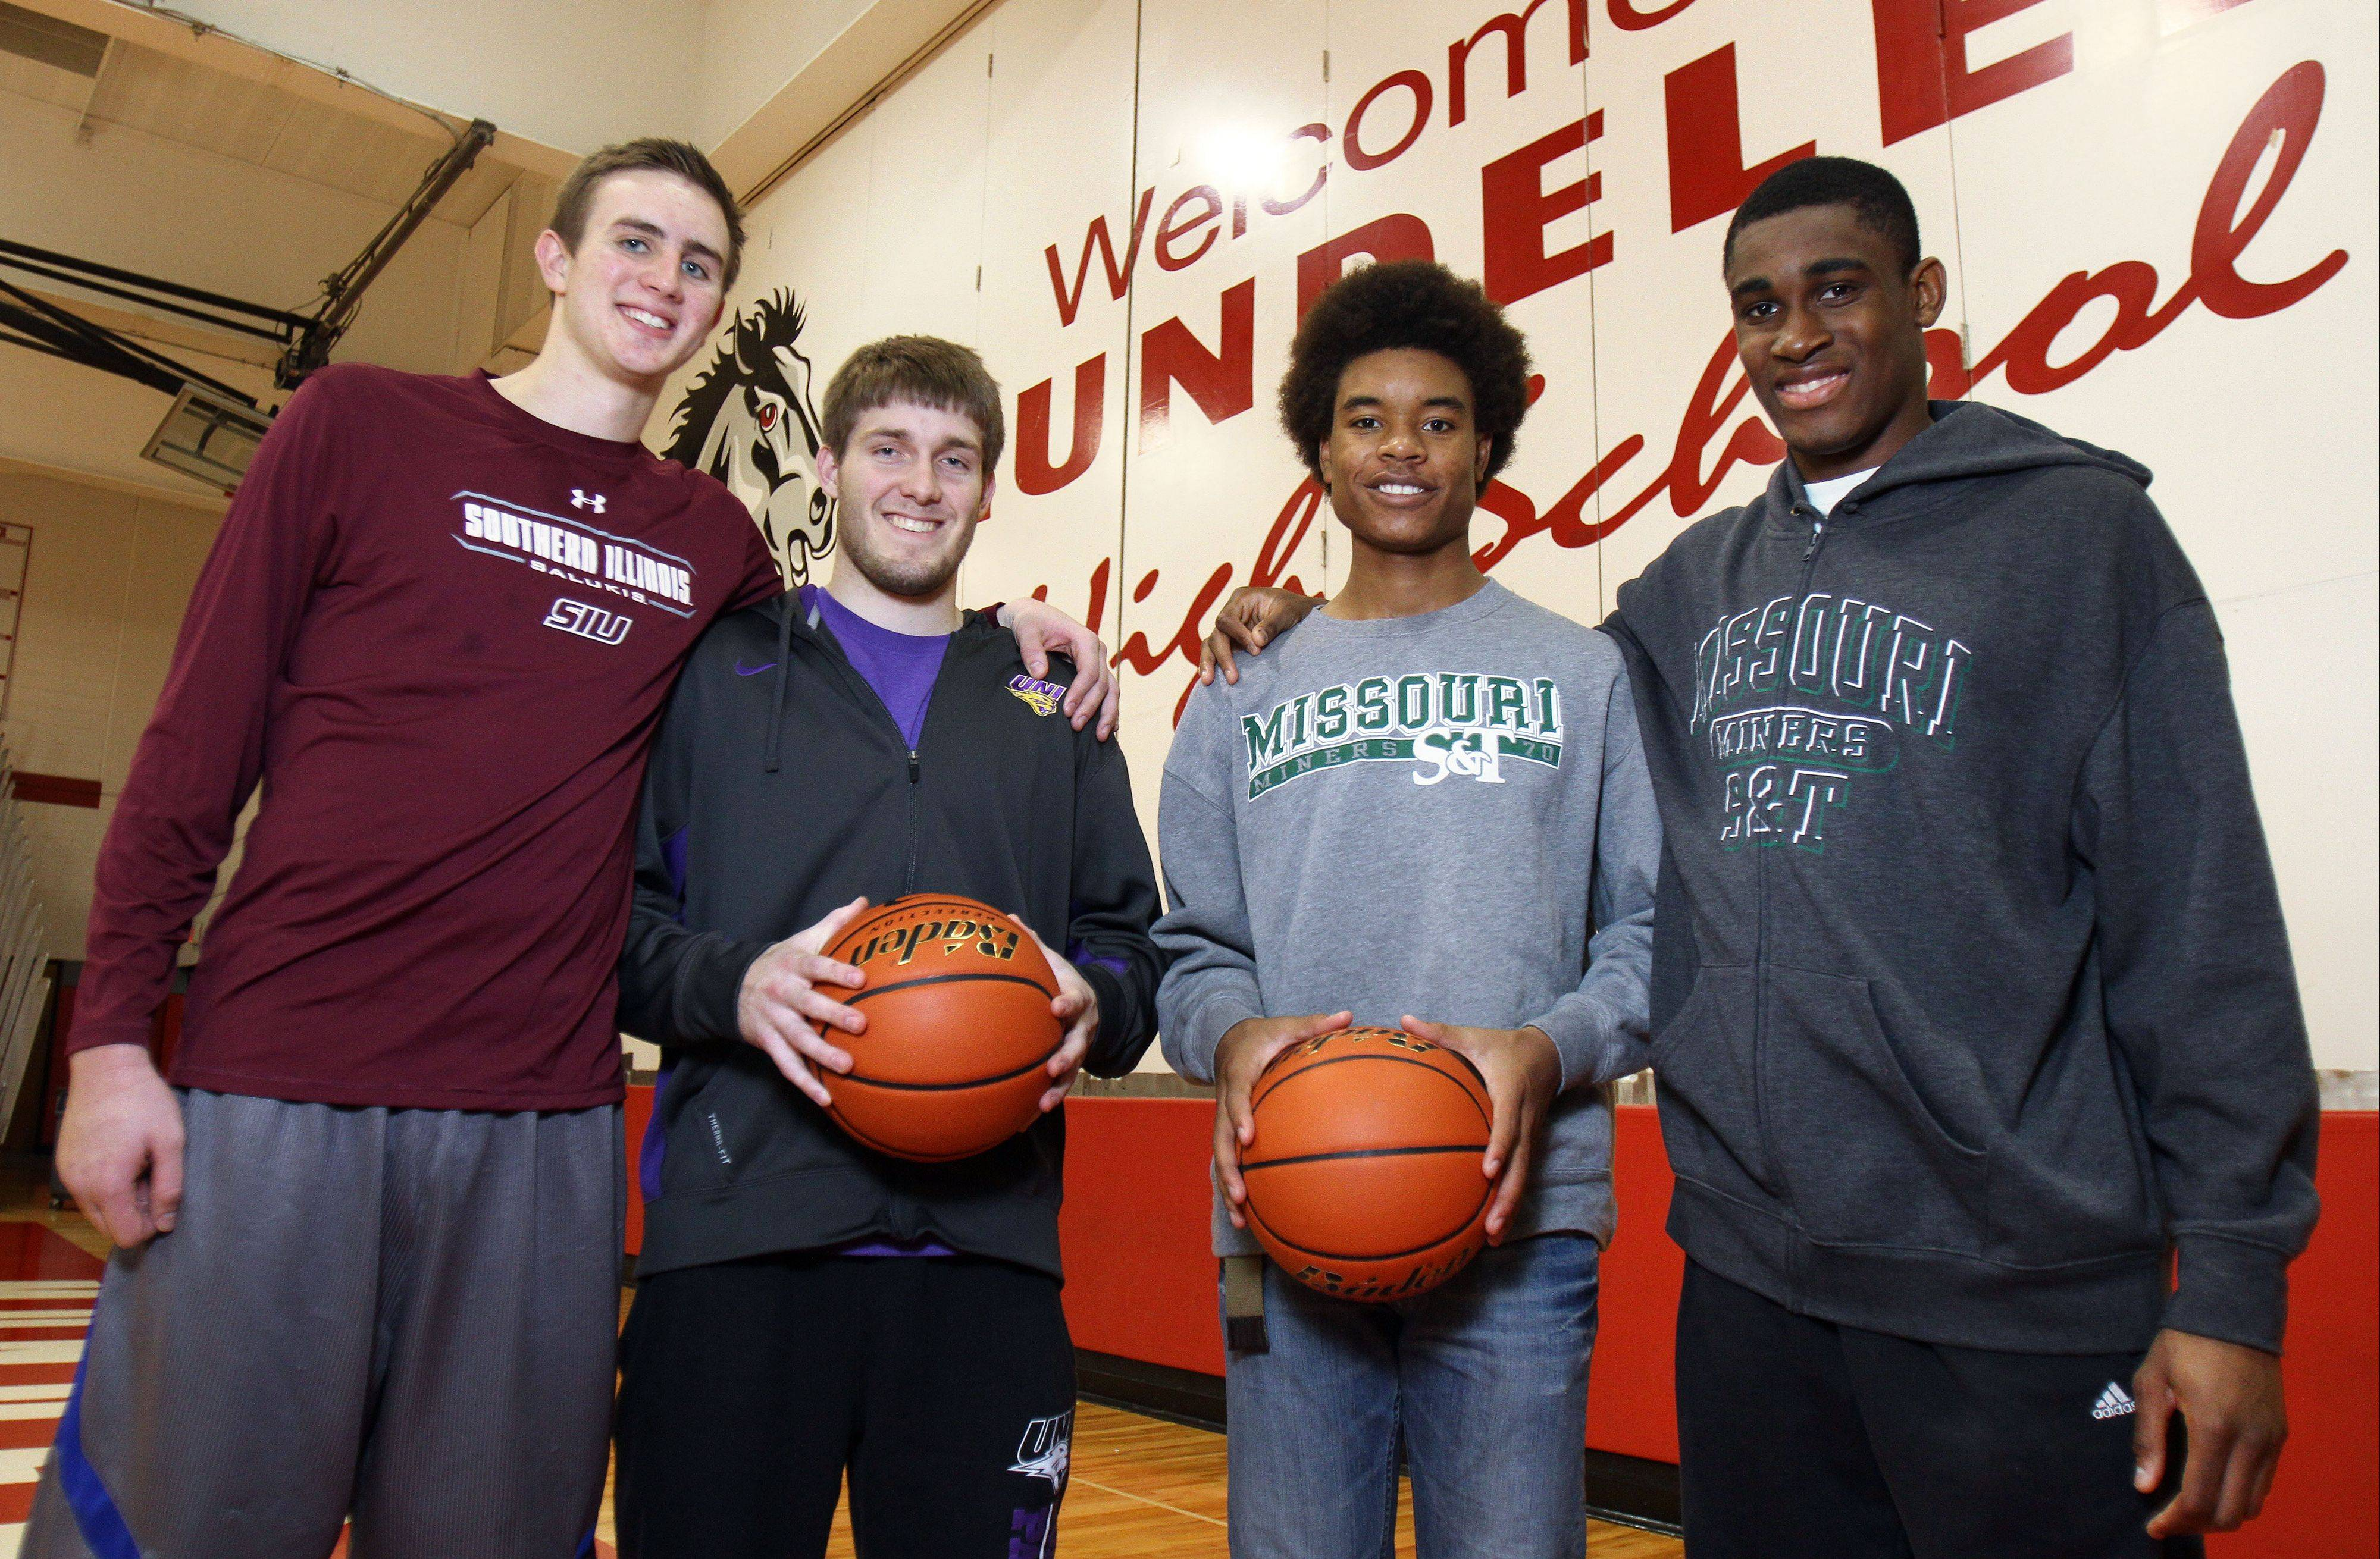 The Mundelein boys basketball team has four players headed for full college scholarships. From left are Sean O�Brien, Robert Knar, Cliff Dunigan and Chino Ebube.